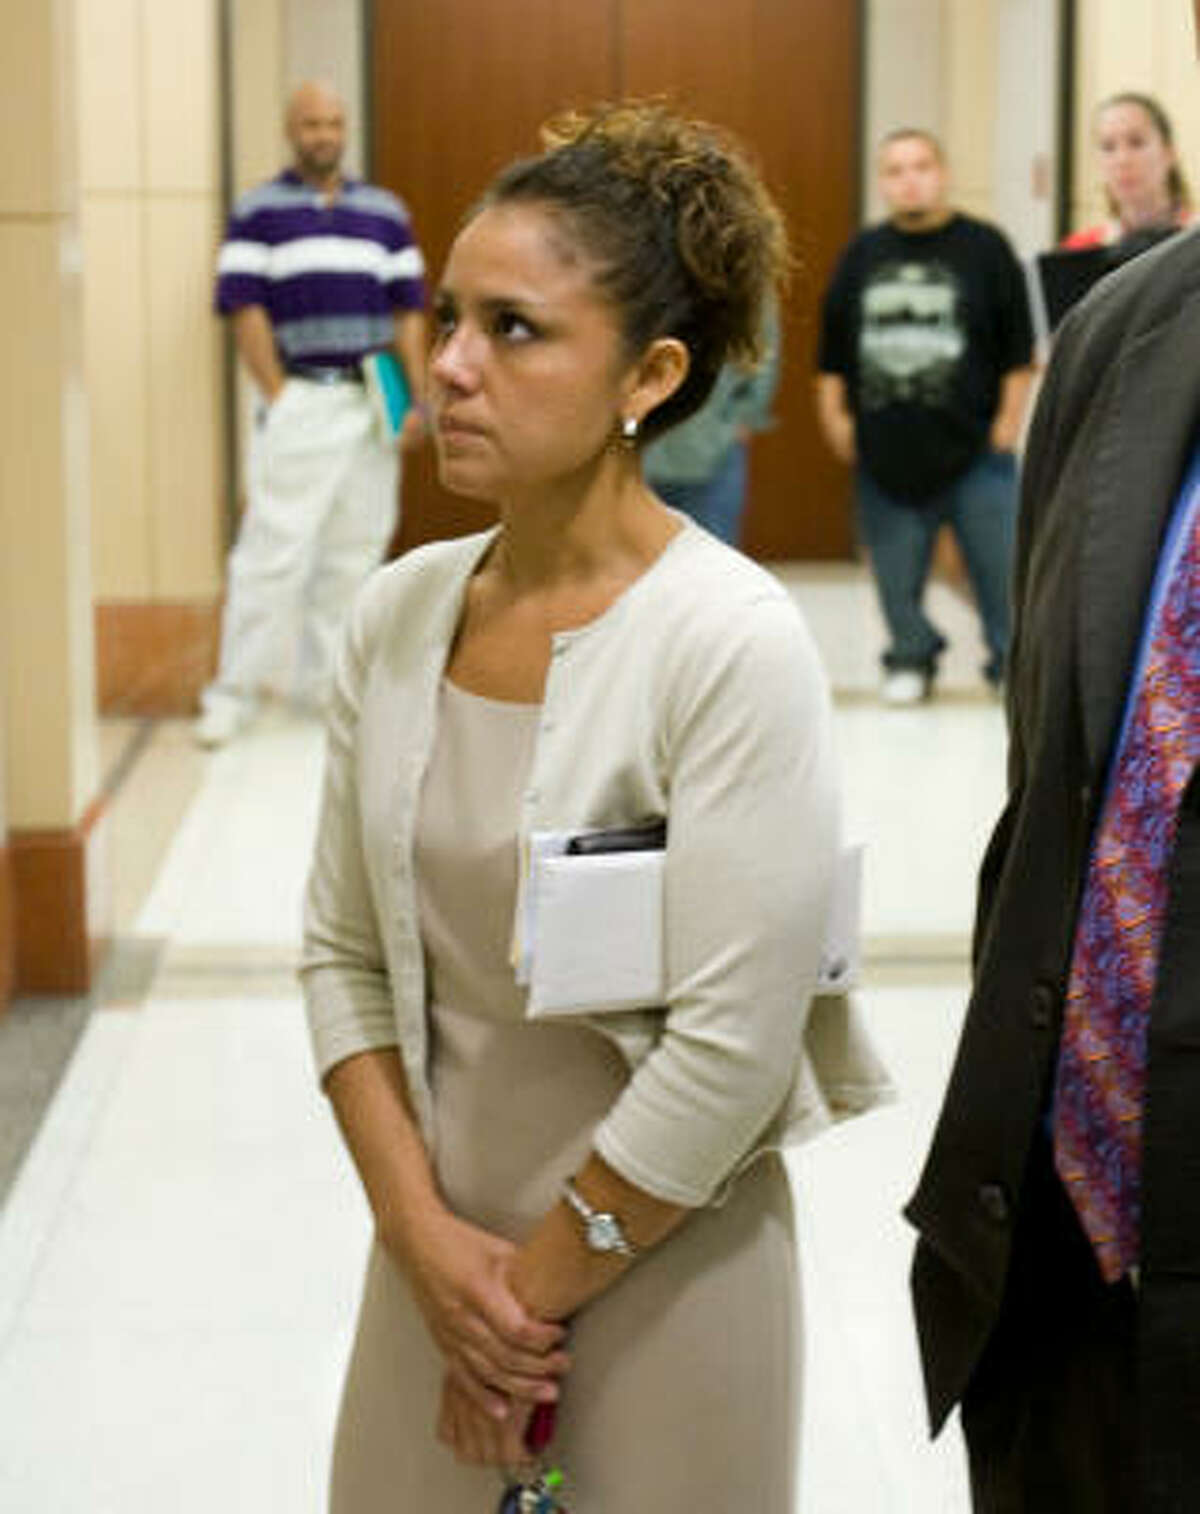 Virginia Cammack waits for an elevator after her court appearance today.